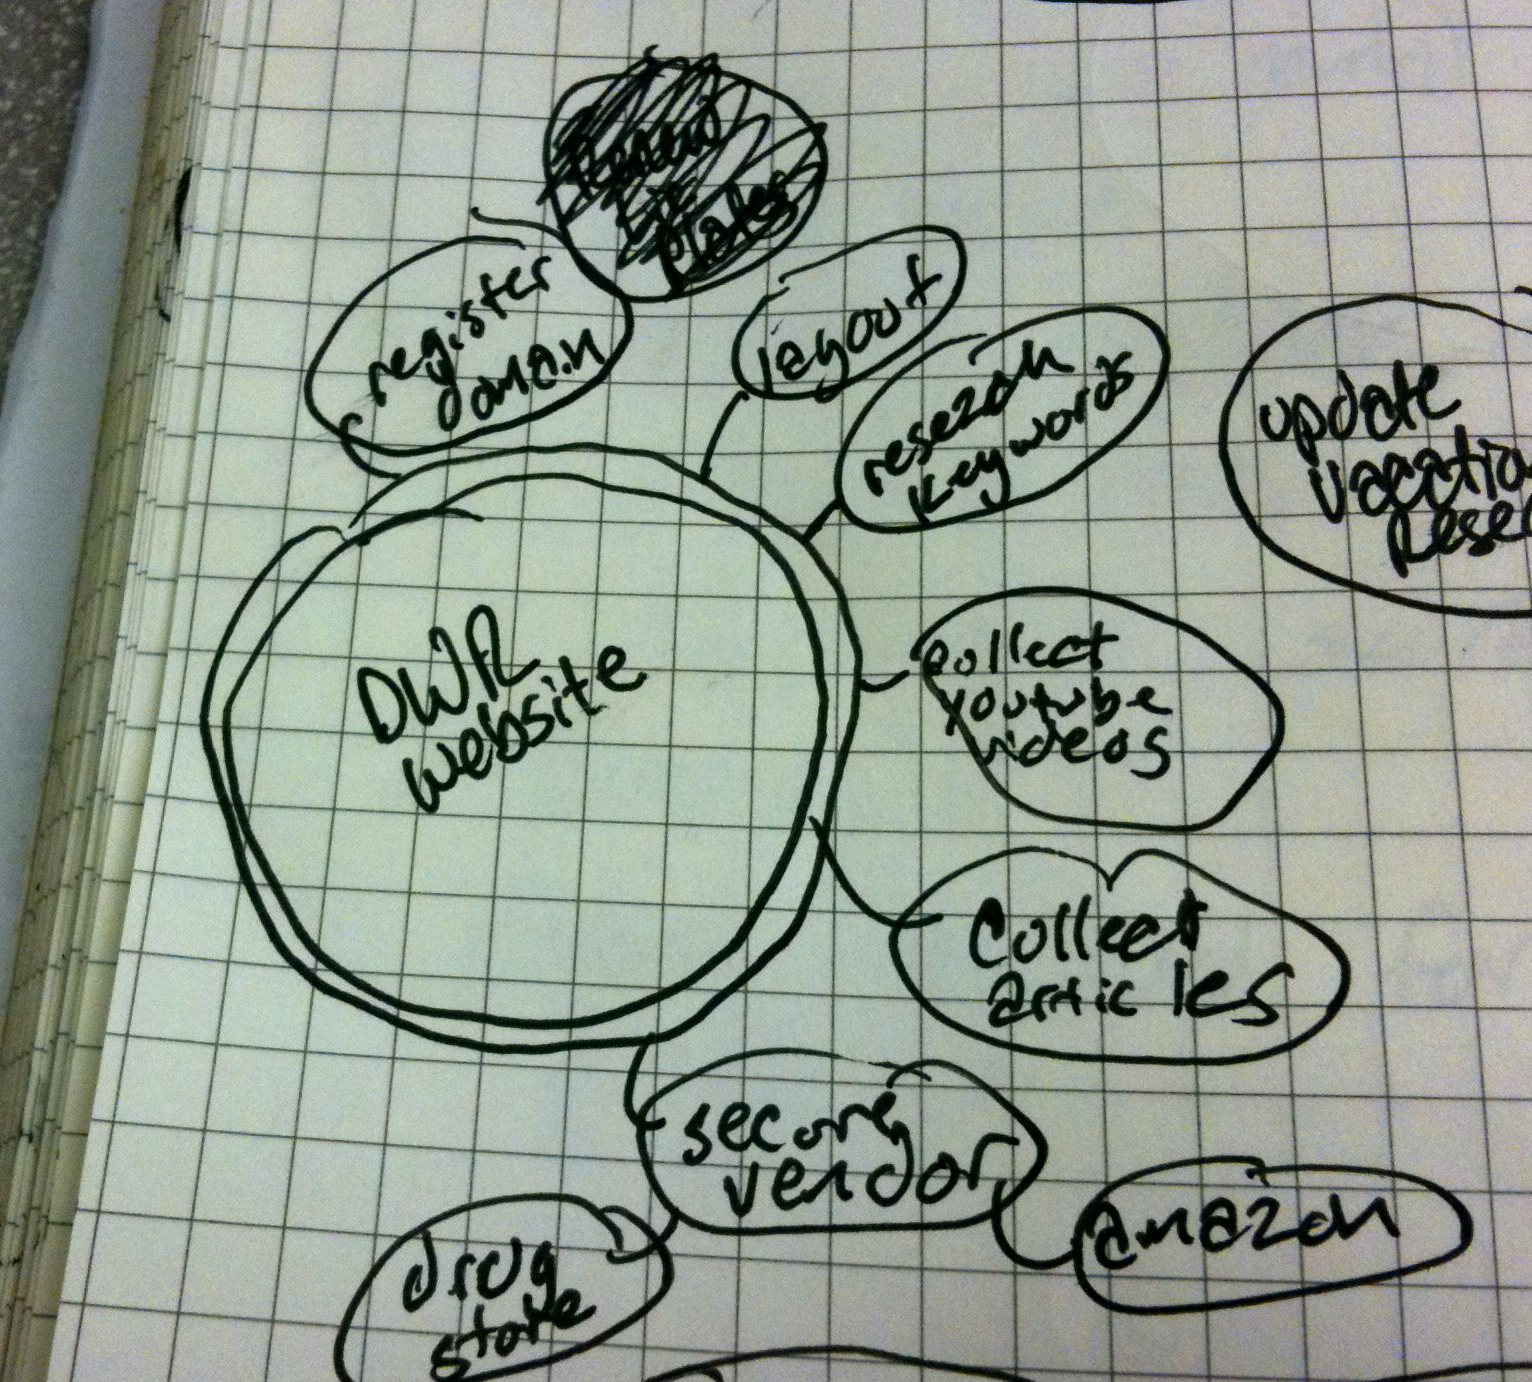 Bubble Map drawn in Moleskine notebook - Closeup of Clustered Bubbles